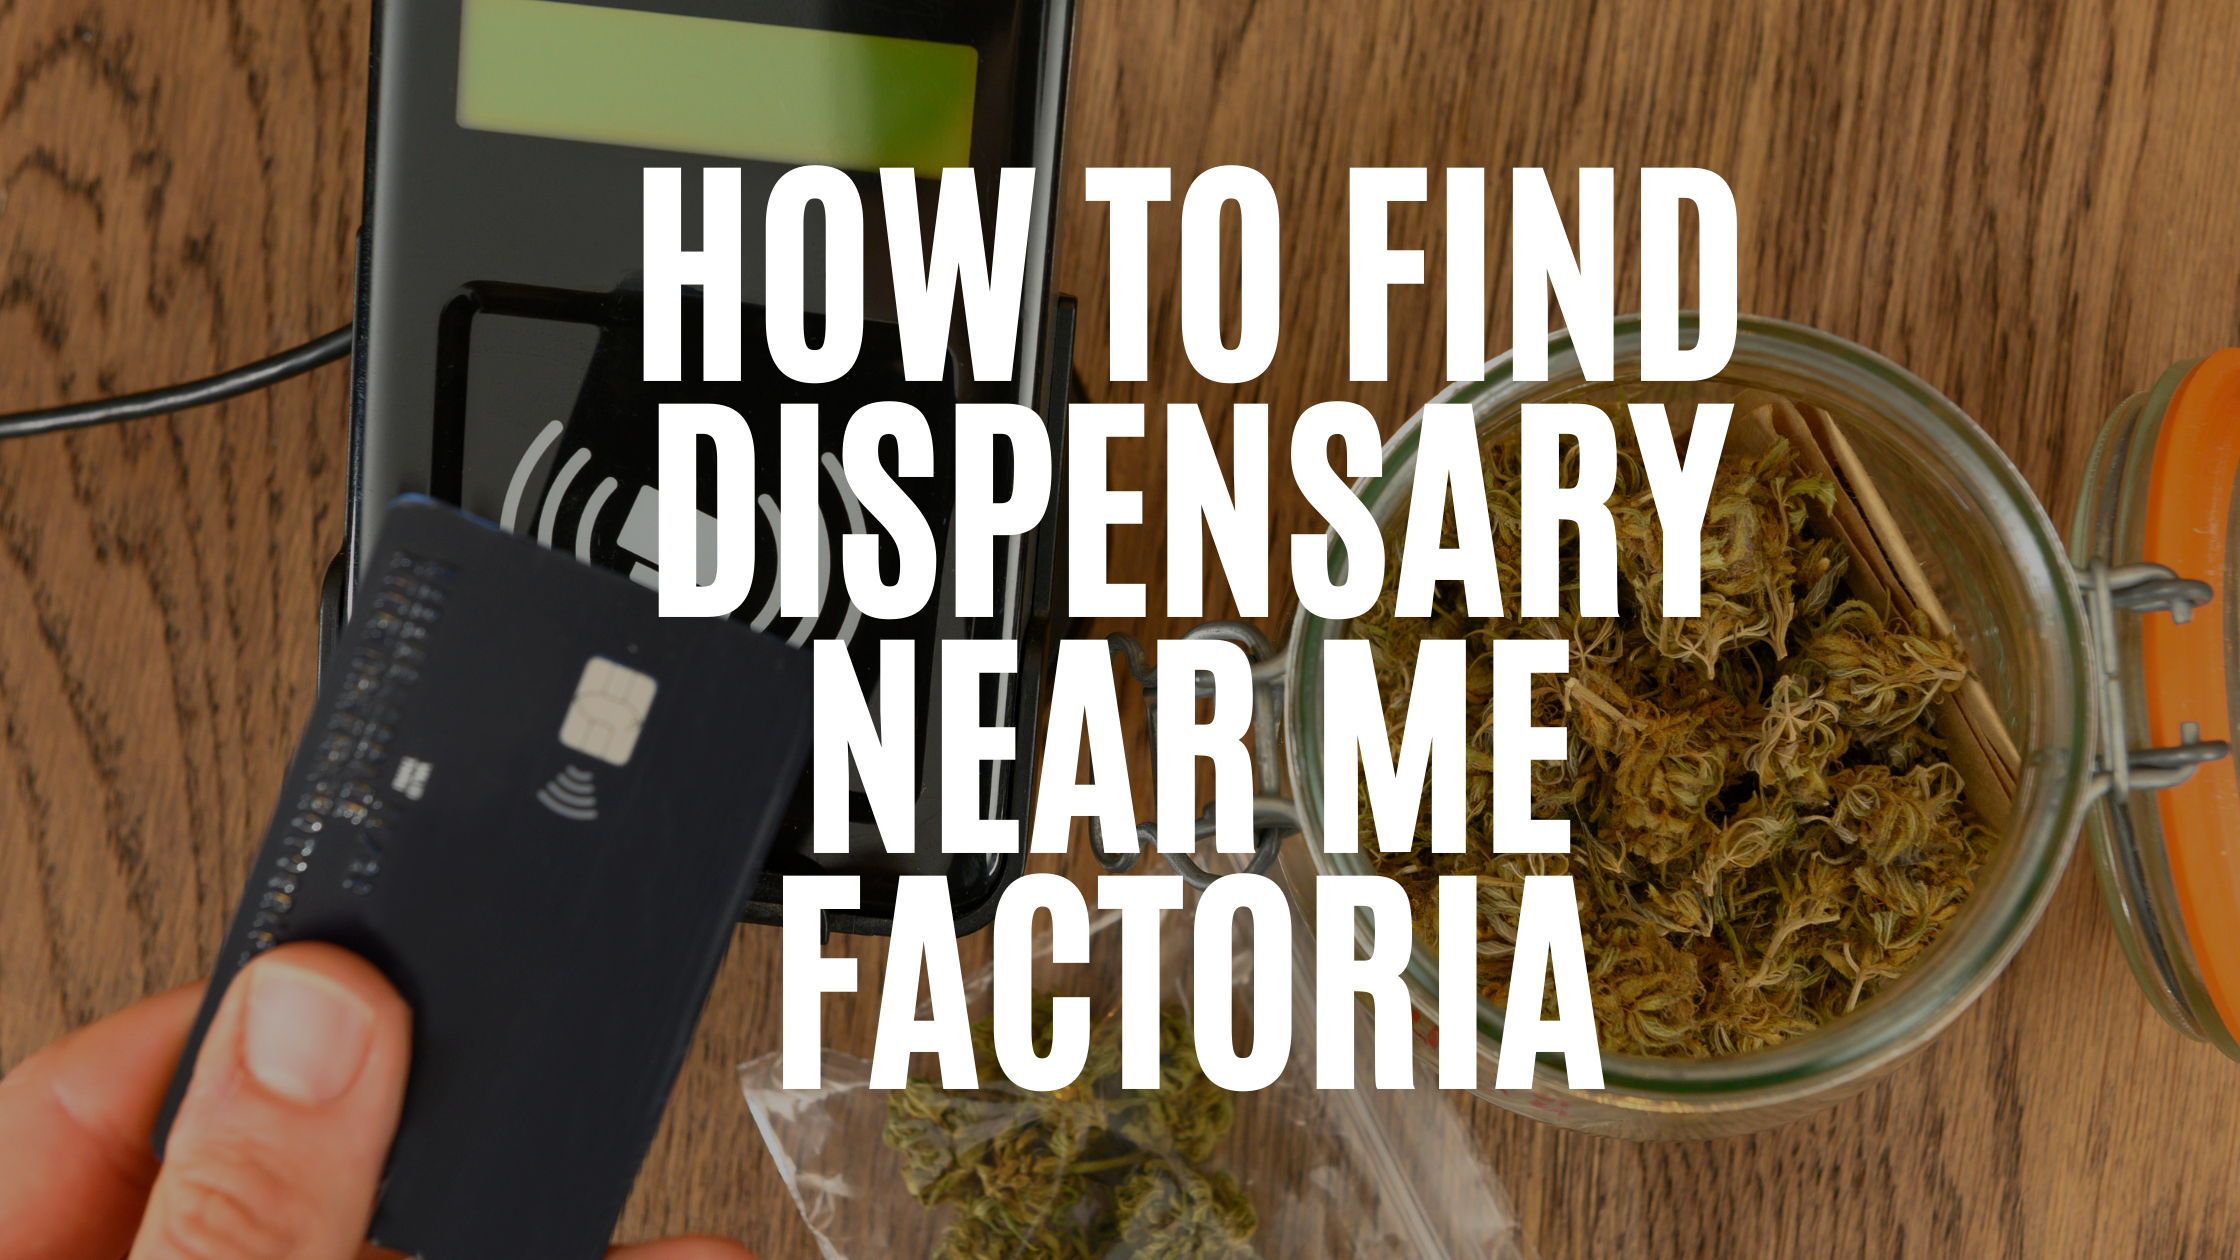 how-to-find-dispensary-near-me-factoria